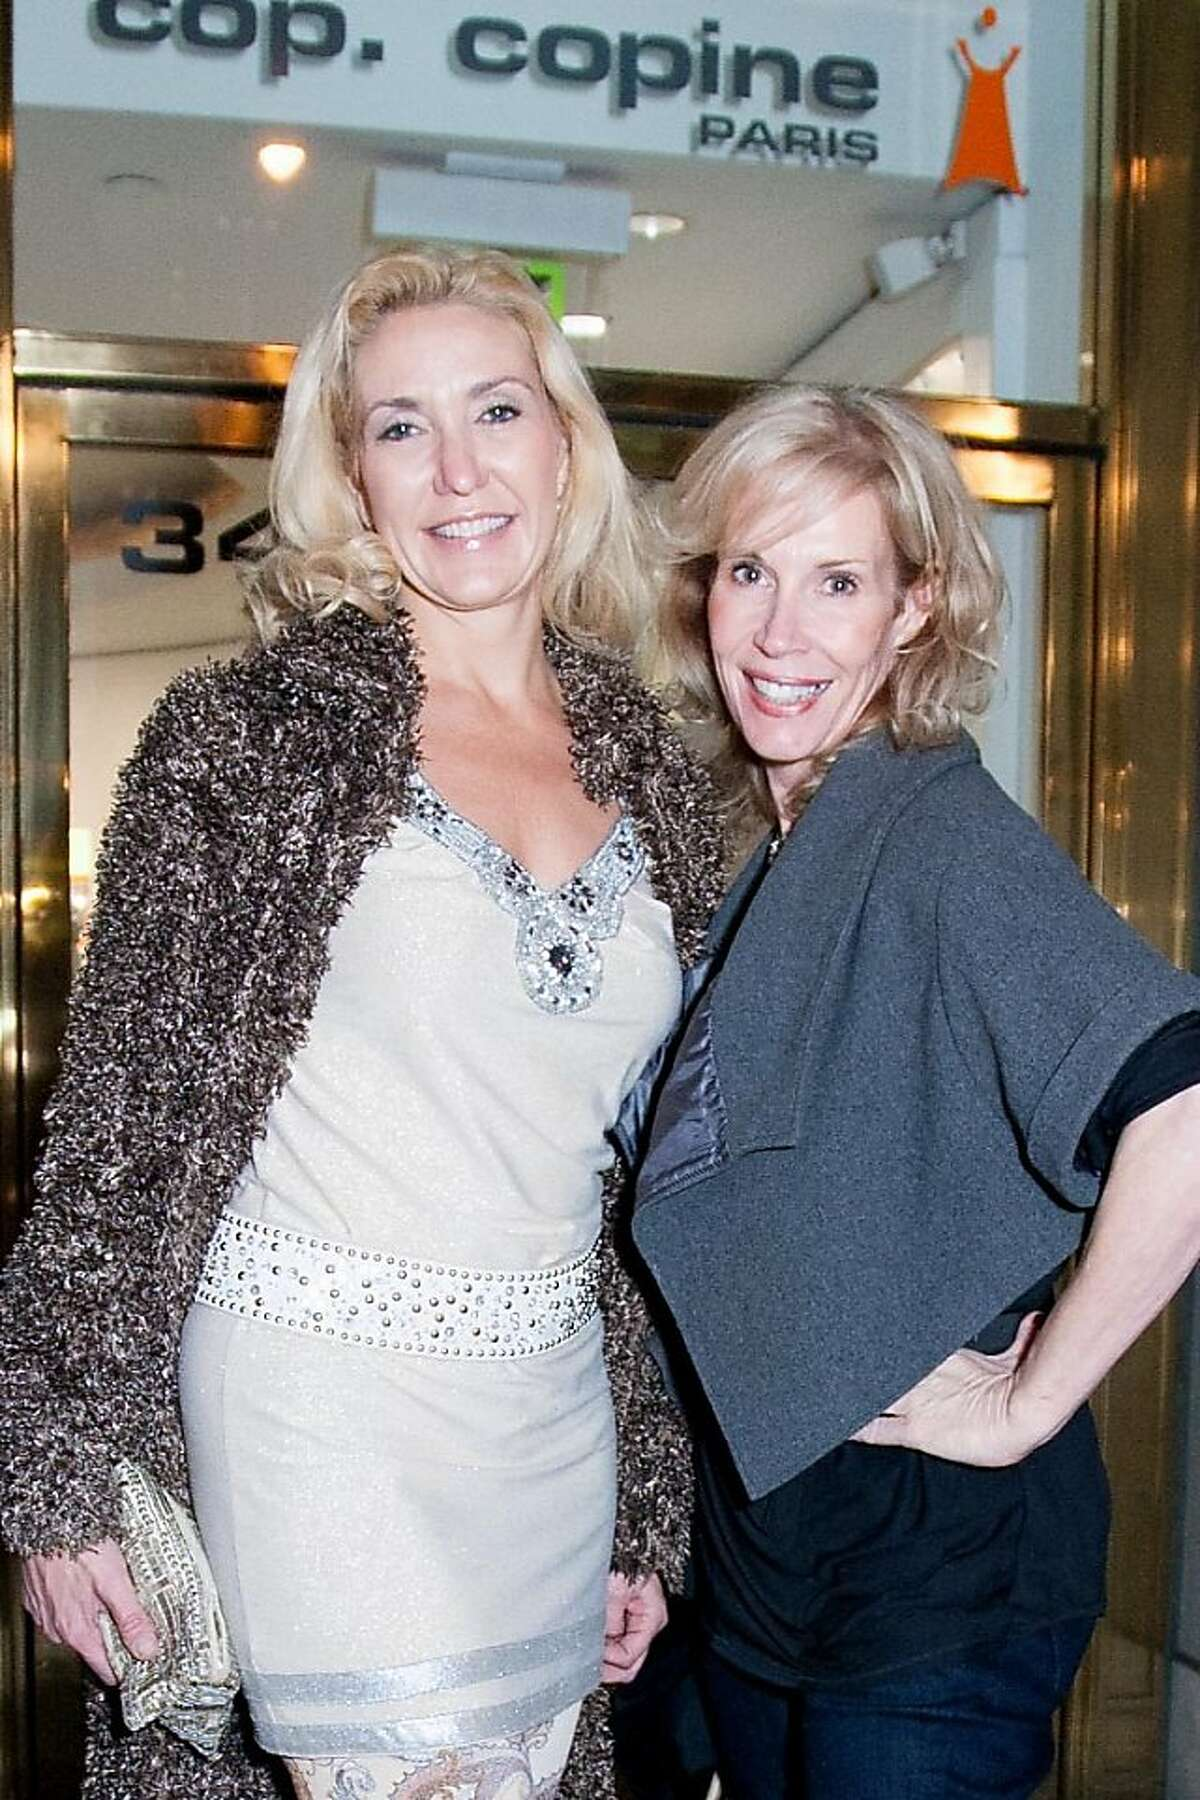 Friends of Charleston Pierce gathered for a holiday party at the Cop.Copine boutique Dec. 12, 2012, in San Francisco. L-R: KP Cote and Denise Elizabeth.